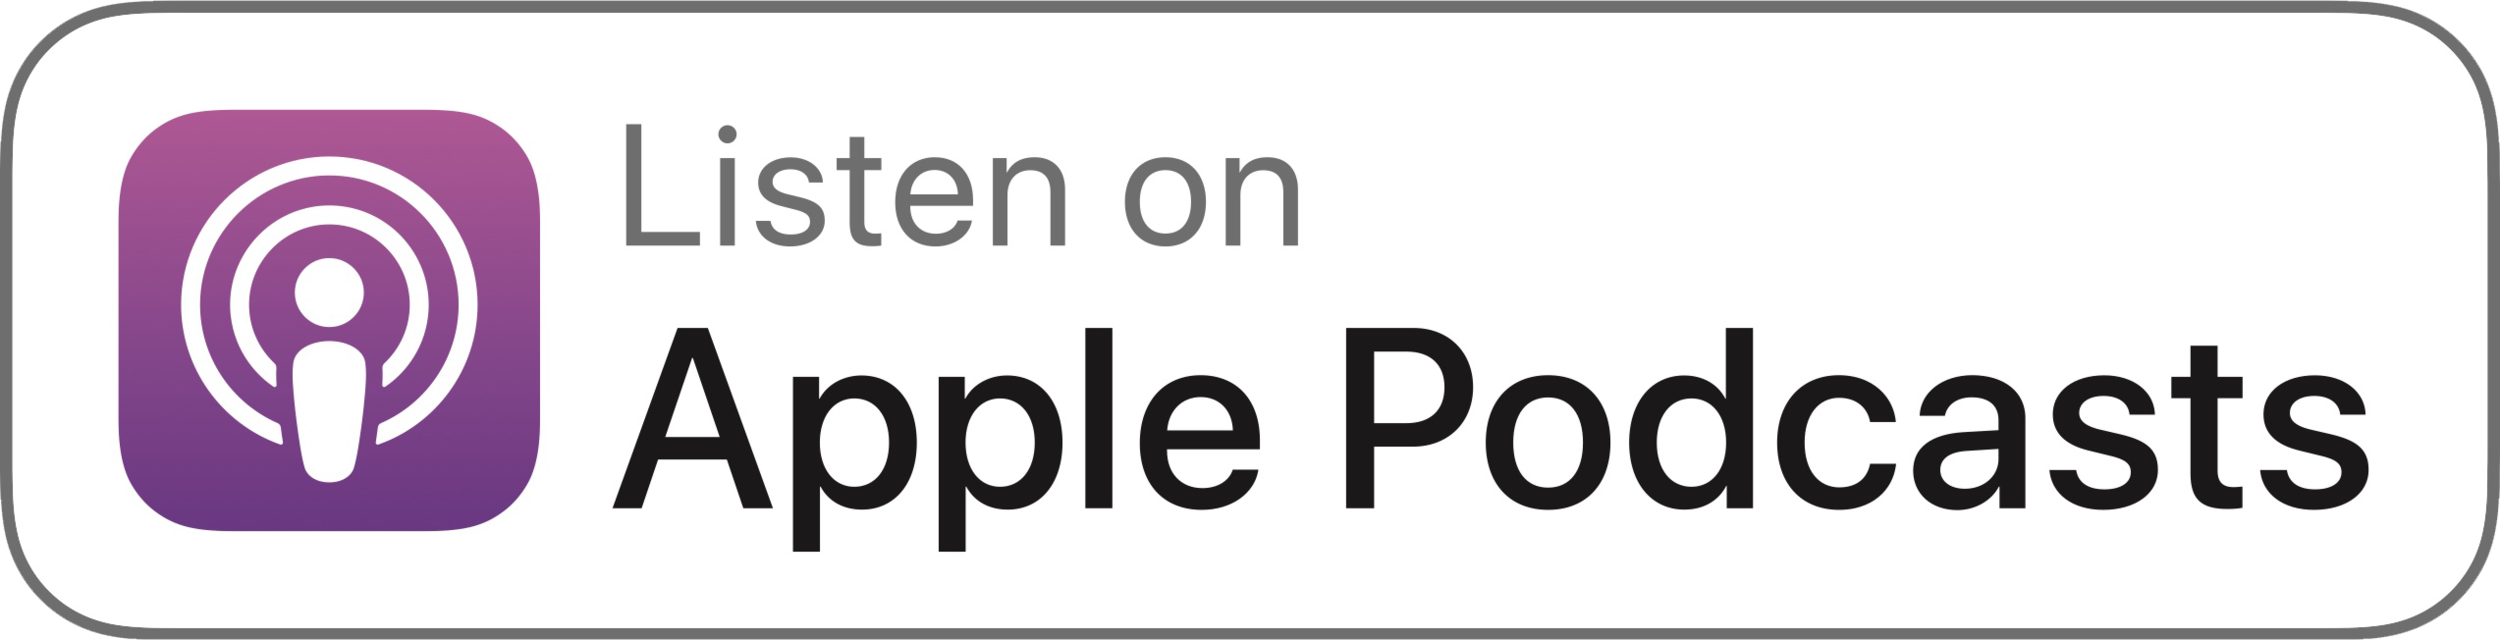 Listen-on-Apple-Podcasts-badge-1.png